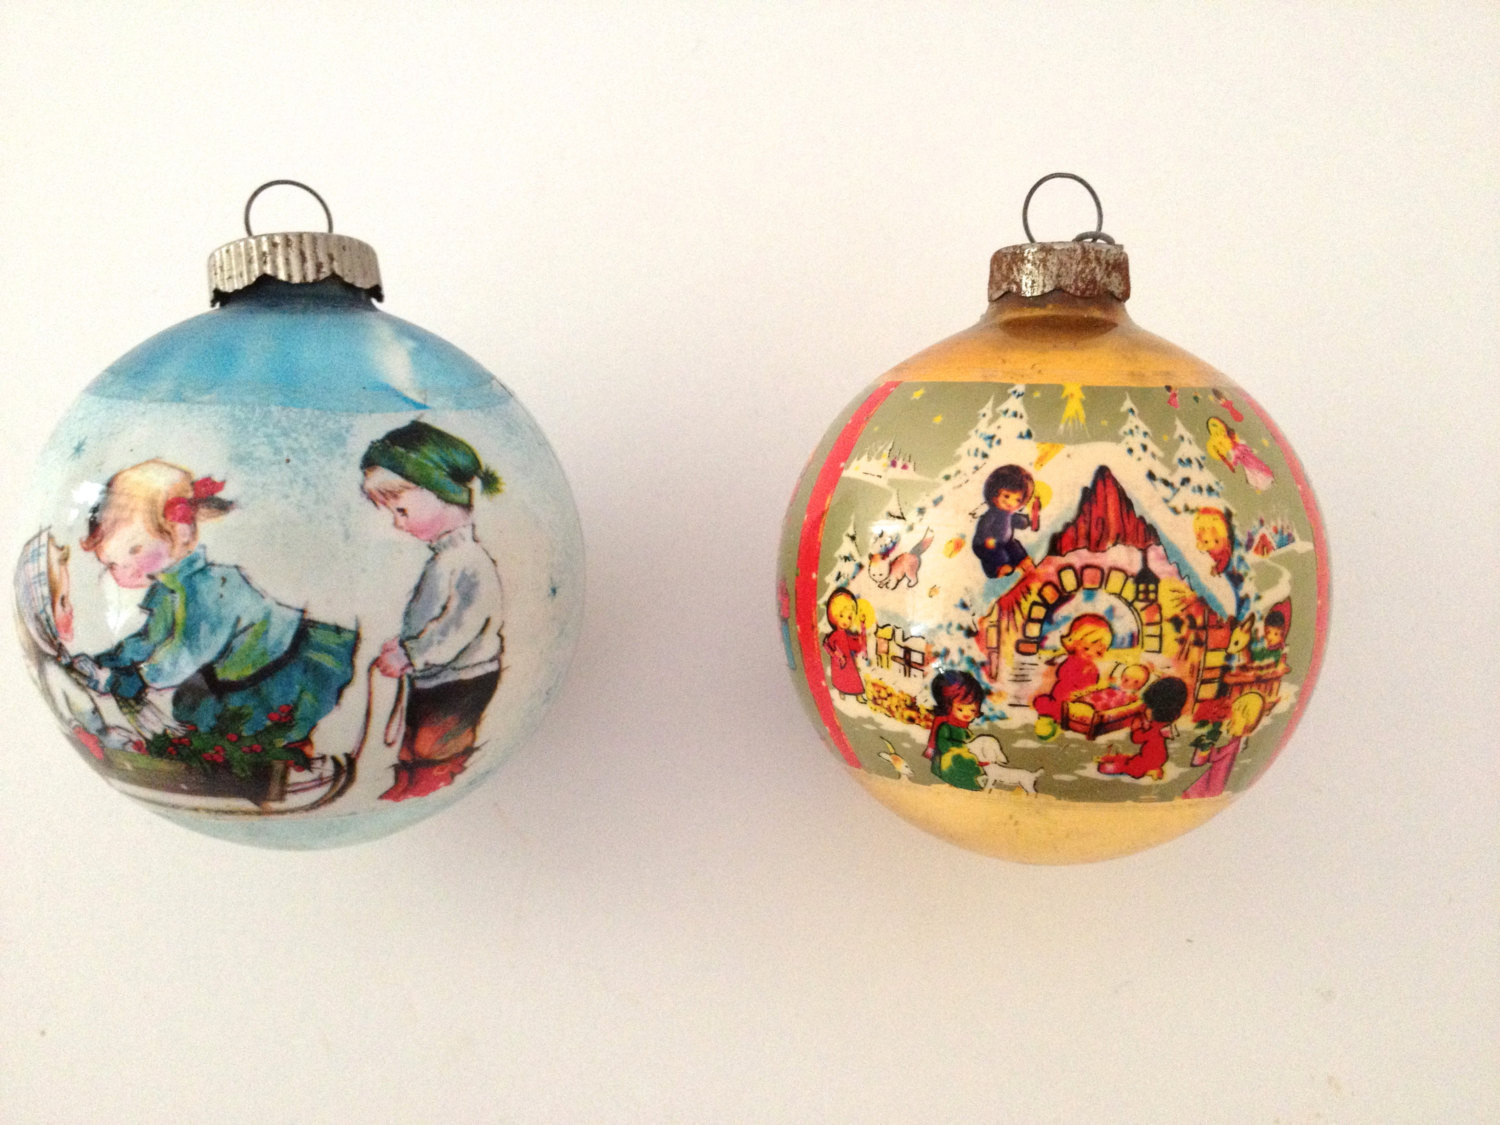 Inspirational Vintage Christmas ornaments Old Fashioned Holiday Scenes Old Fashioned Christmas ornaments Of Adorable 35 Pics Old Fashioned Christmas ornaments